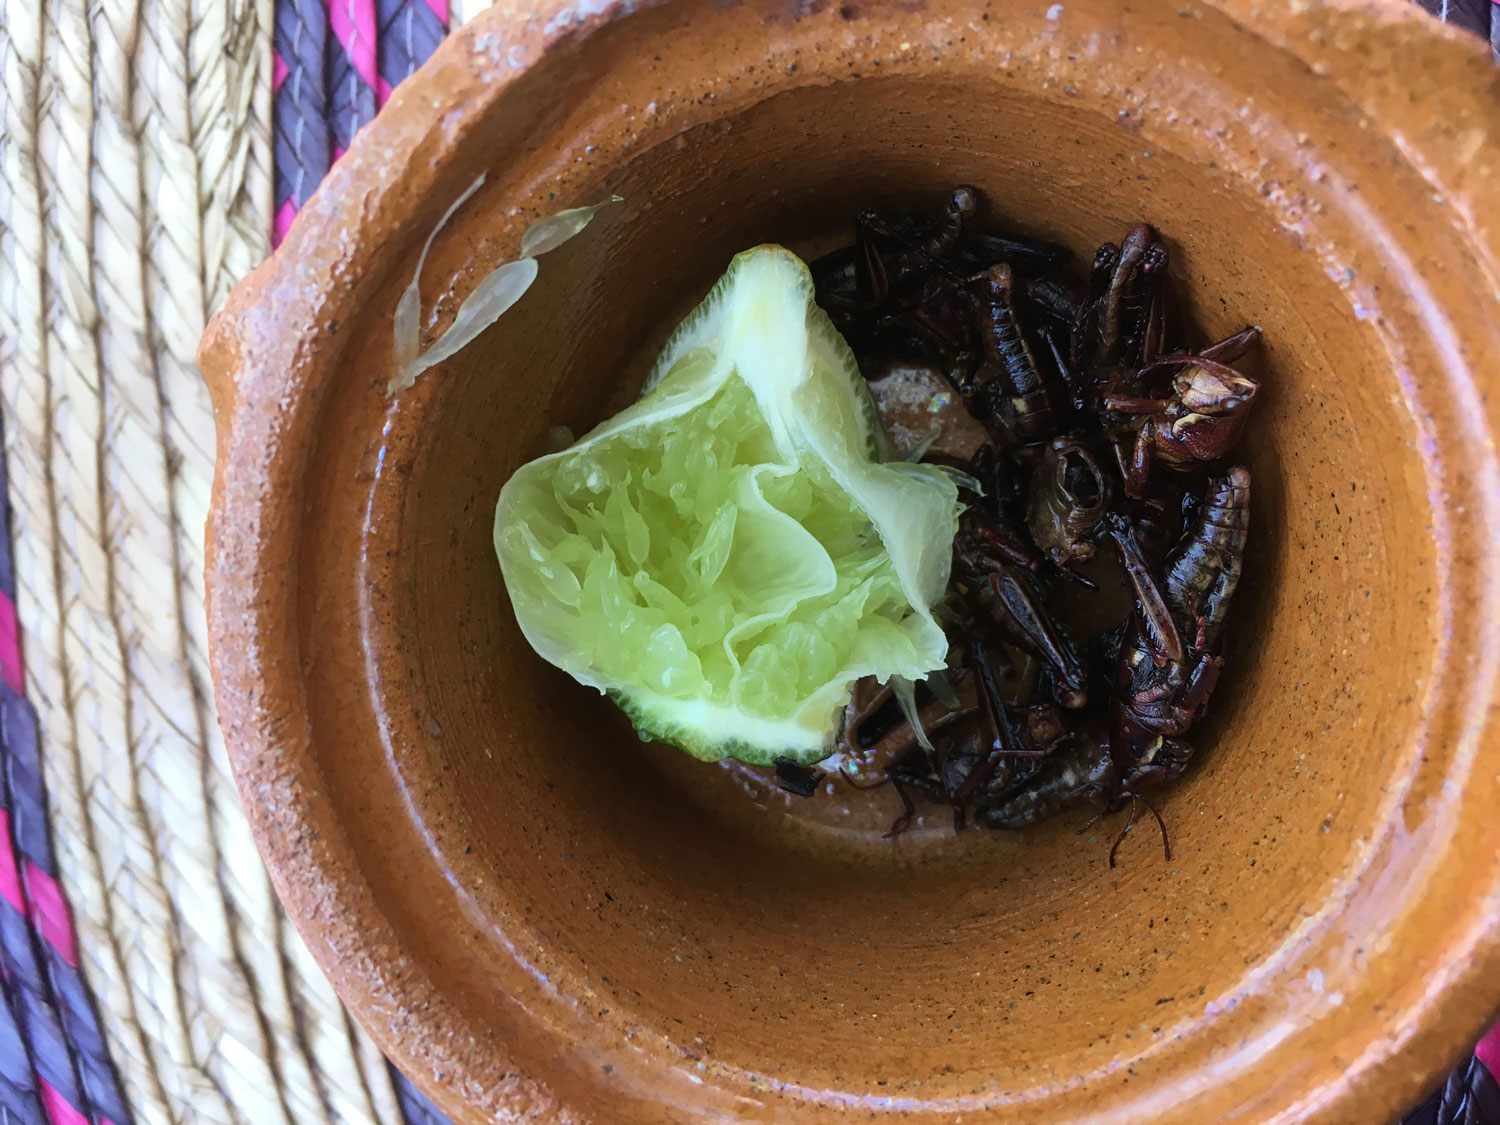 At La Perla with my Mexican friend Claudia. Our starter: crickets.